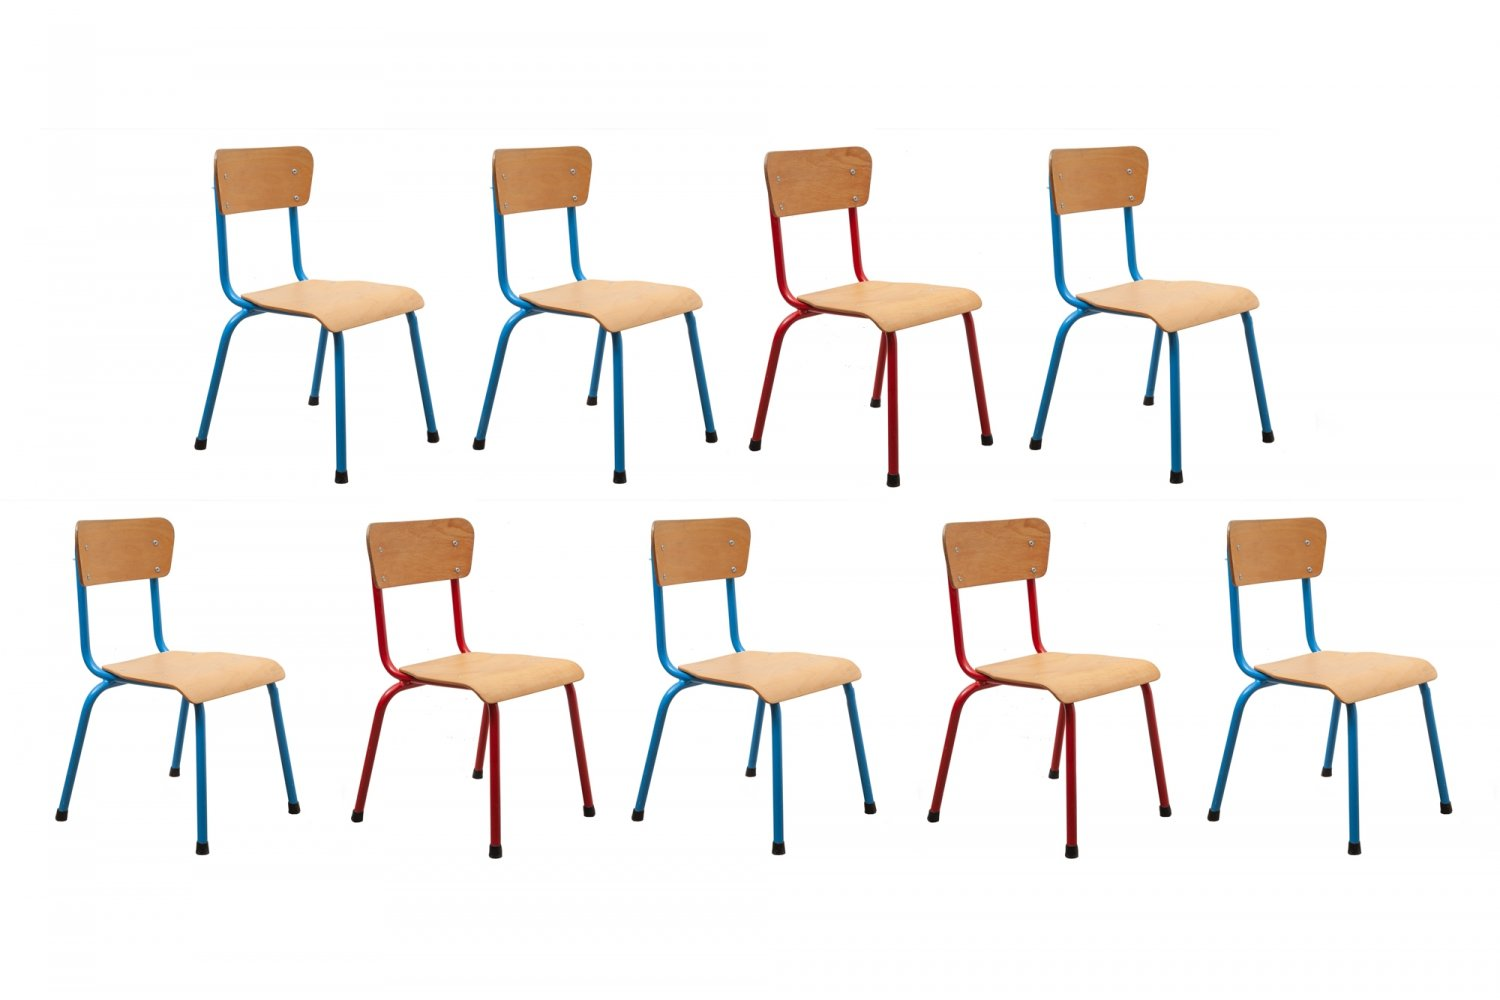 Tubax children's chairs with bent plywood & tubular metal bases